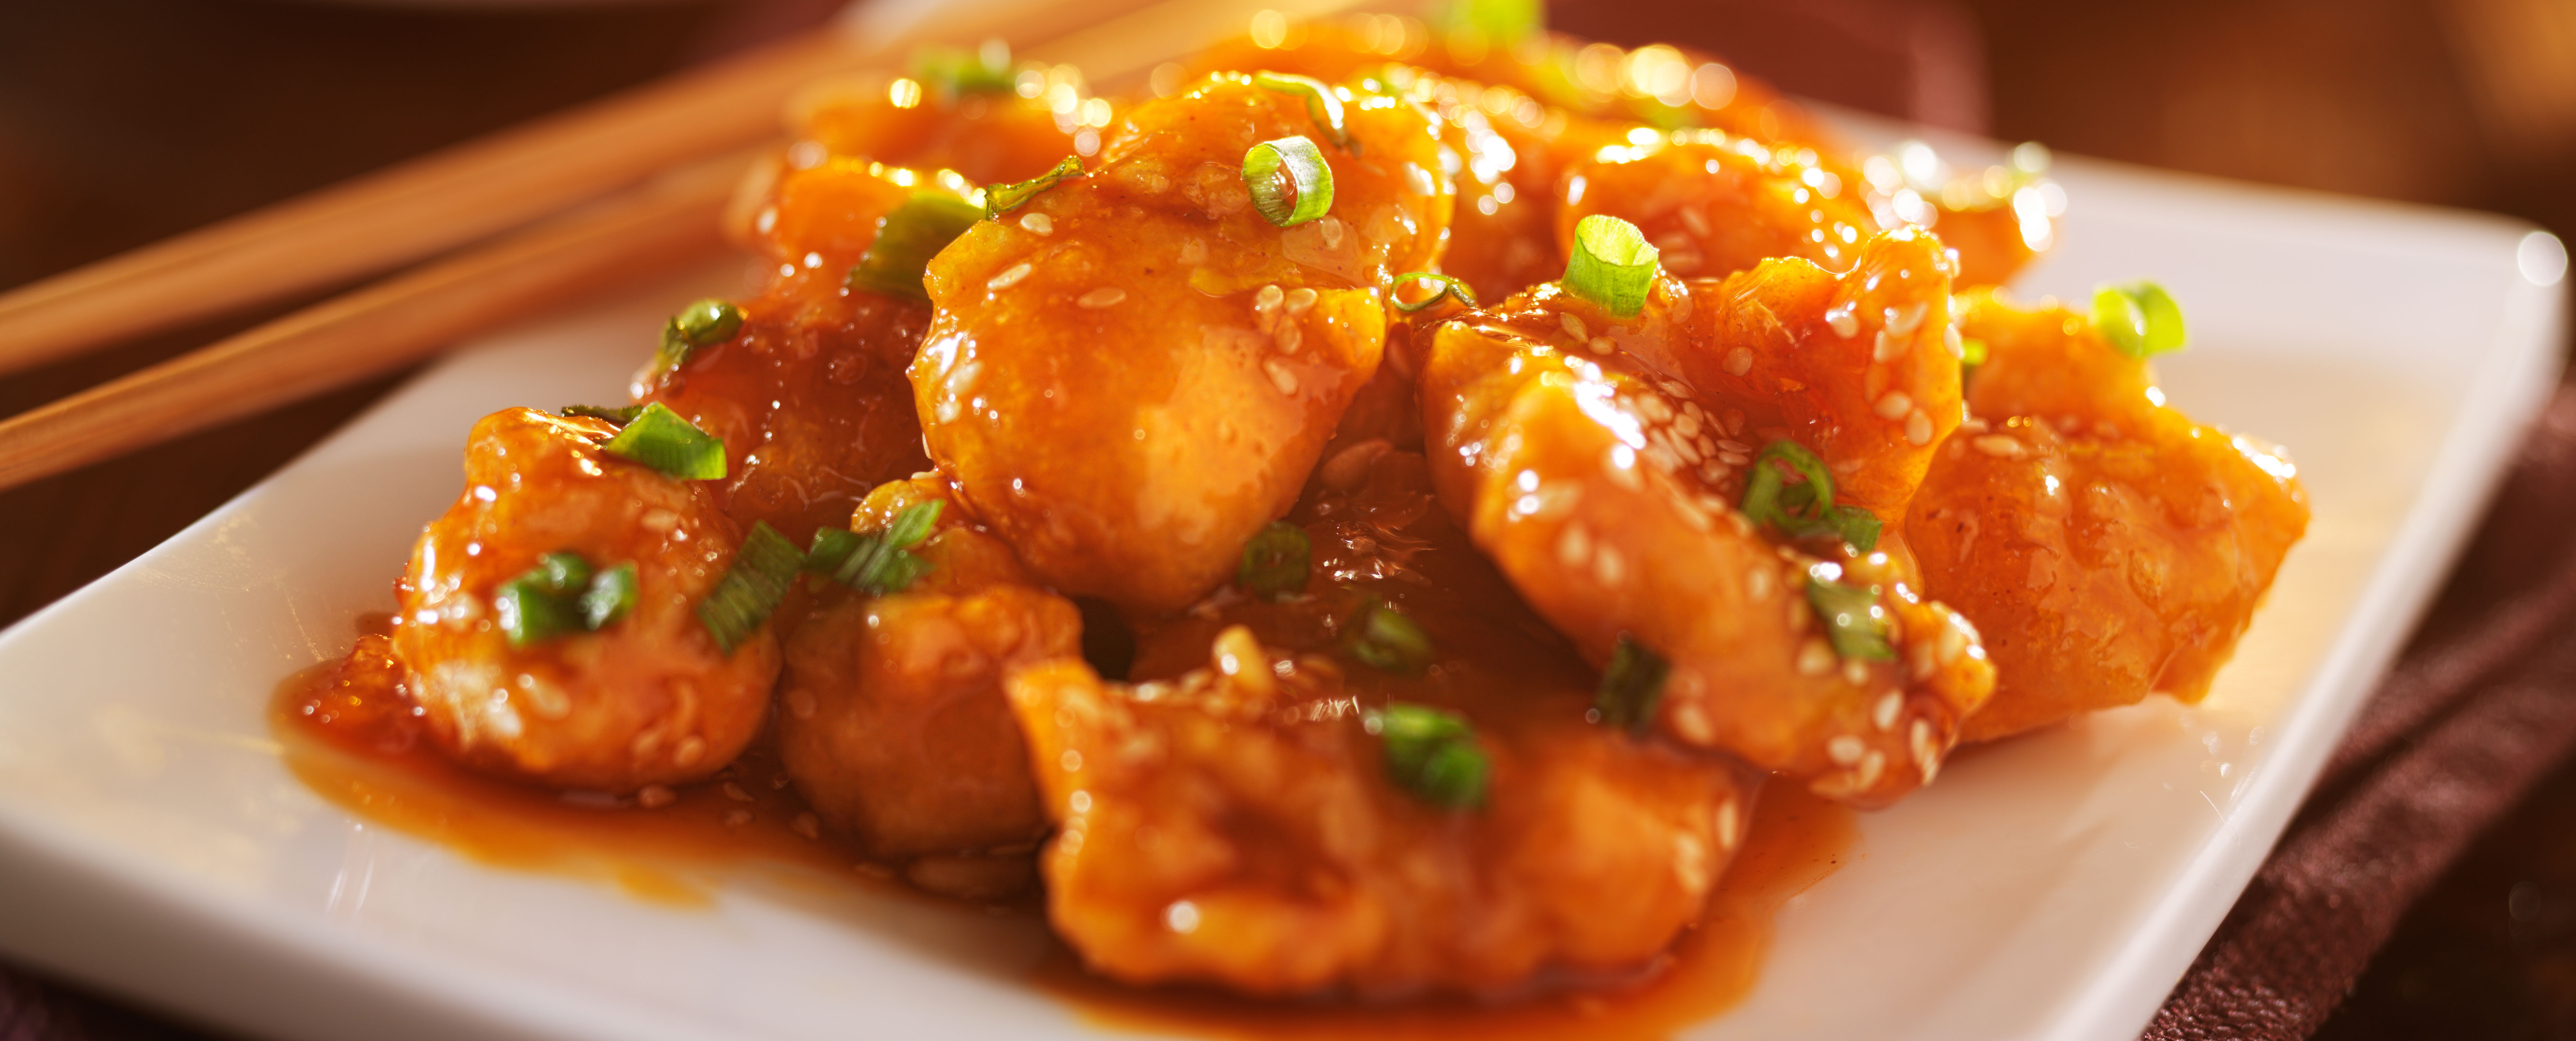 Orange Chicken with Carrots